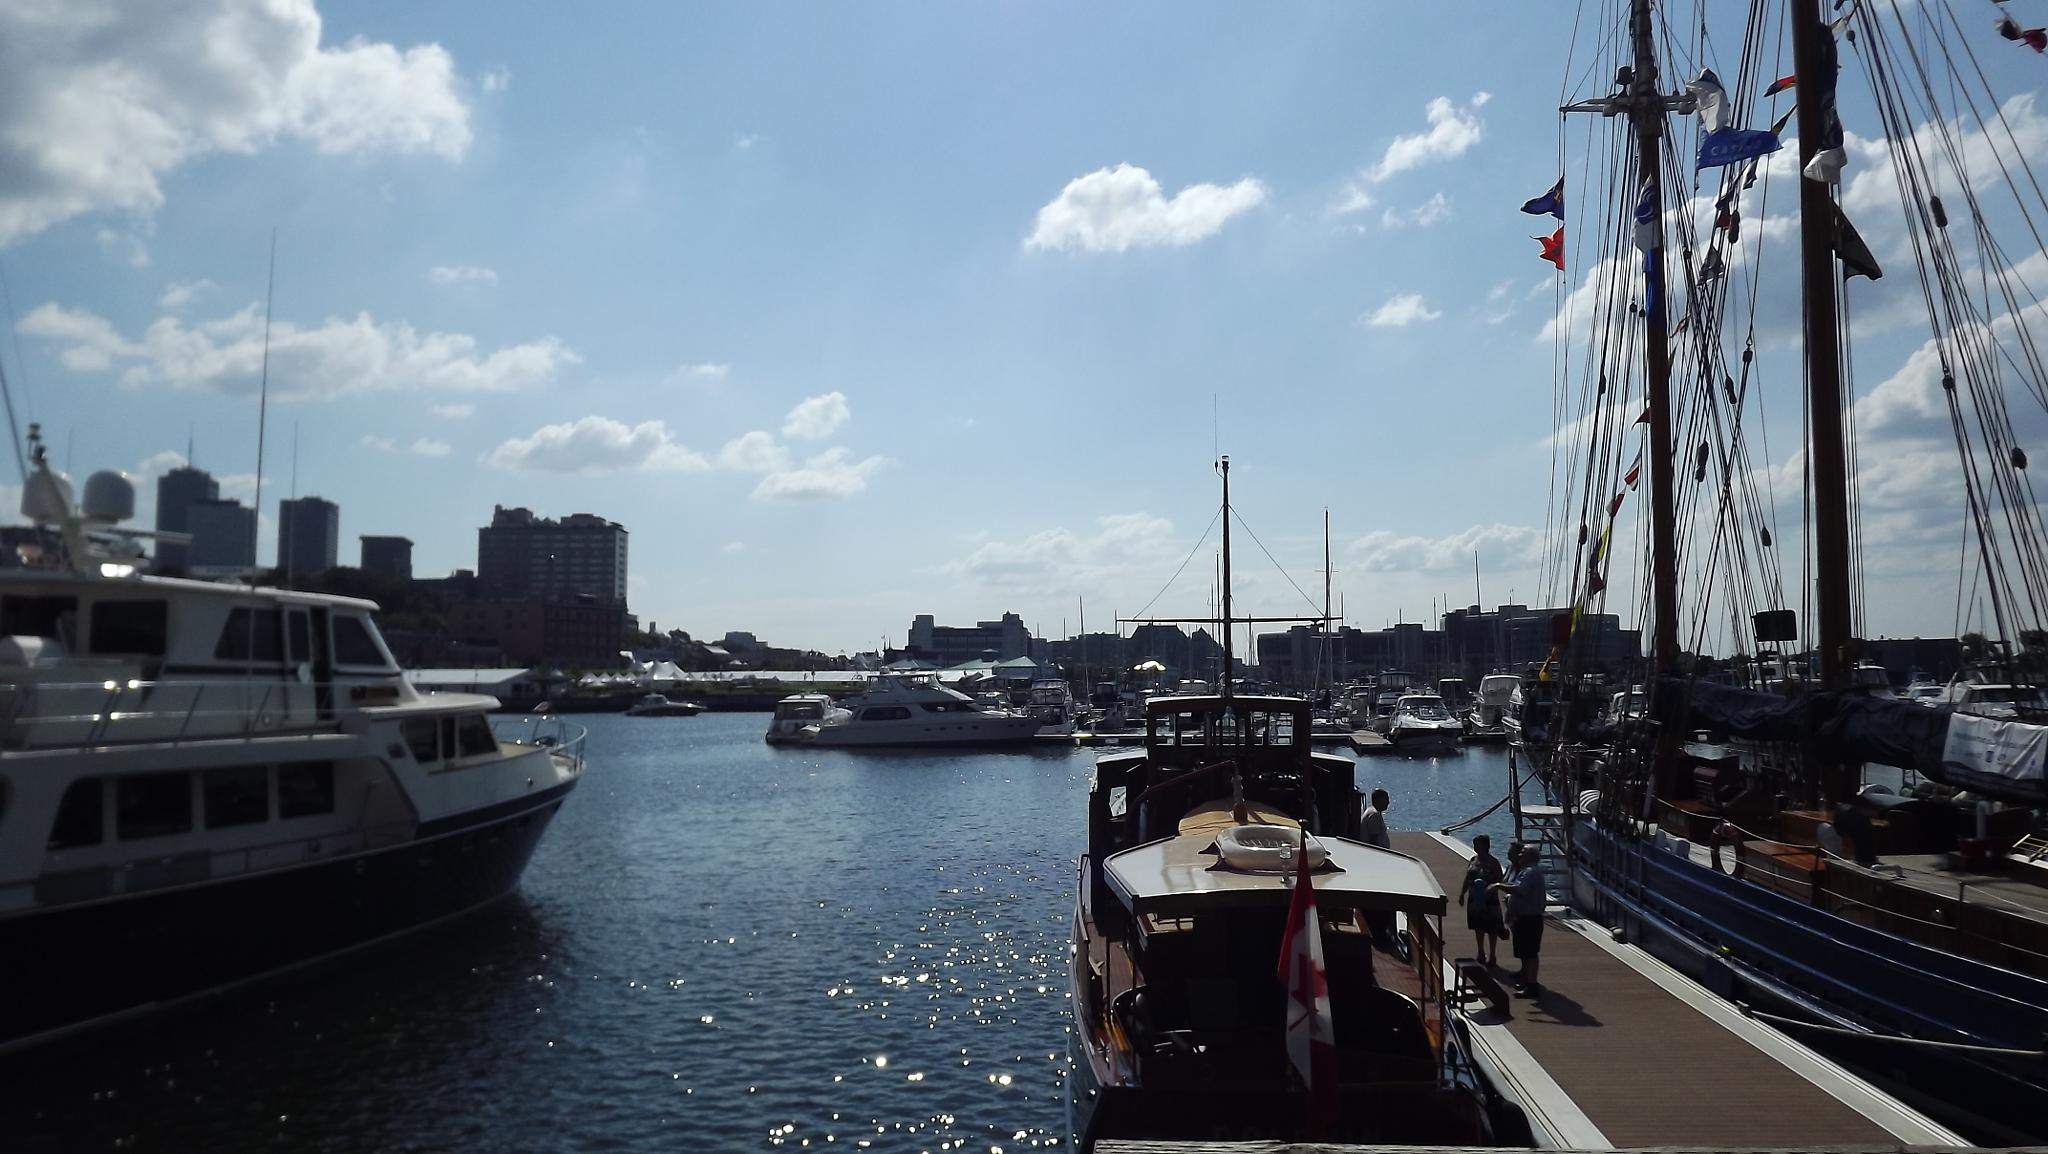 Sunny day marine boat by real.michaud.5036